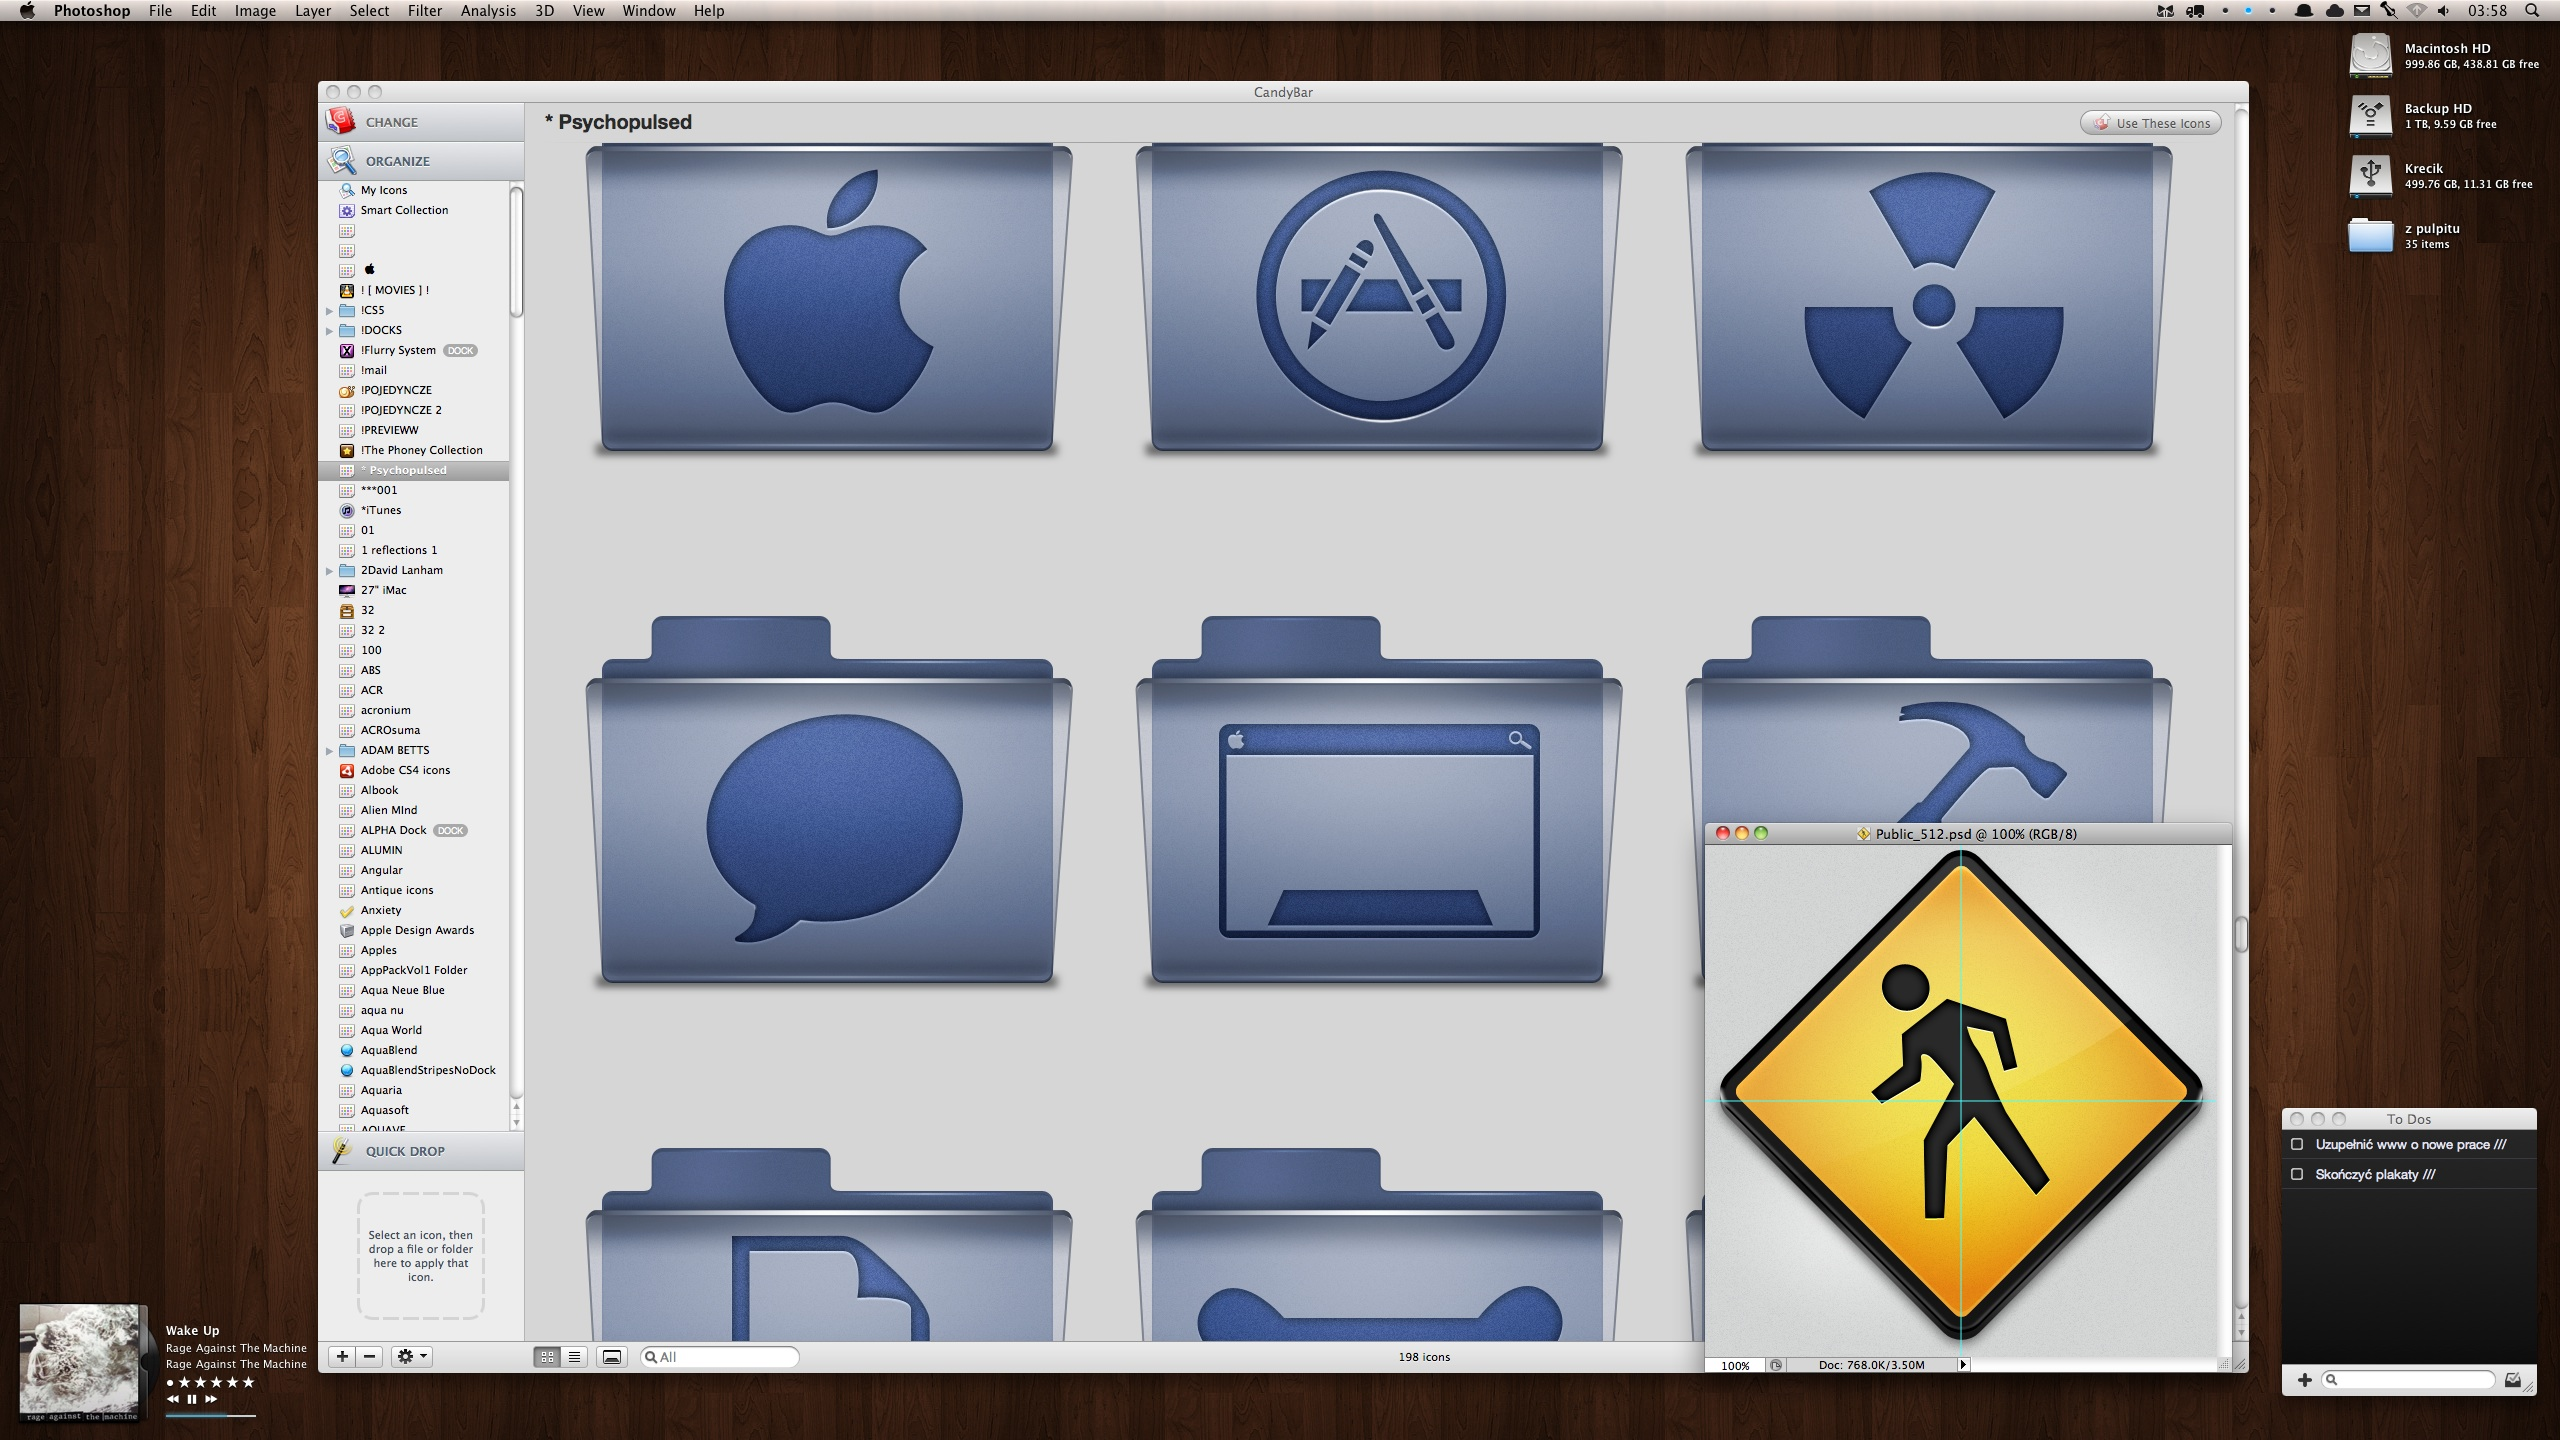 Pulse'd by Psychopulse